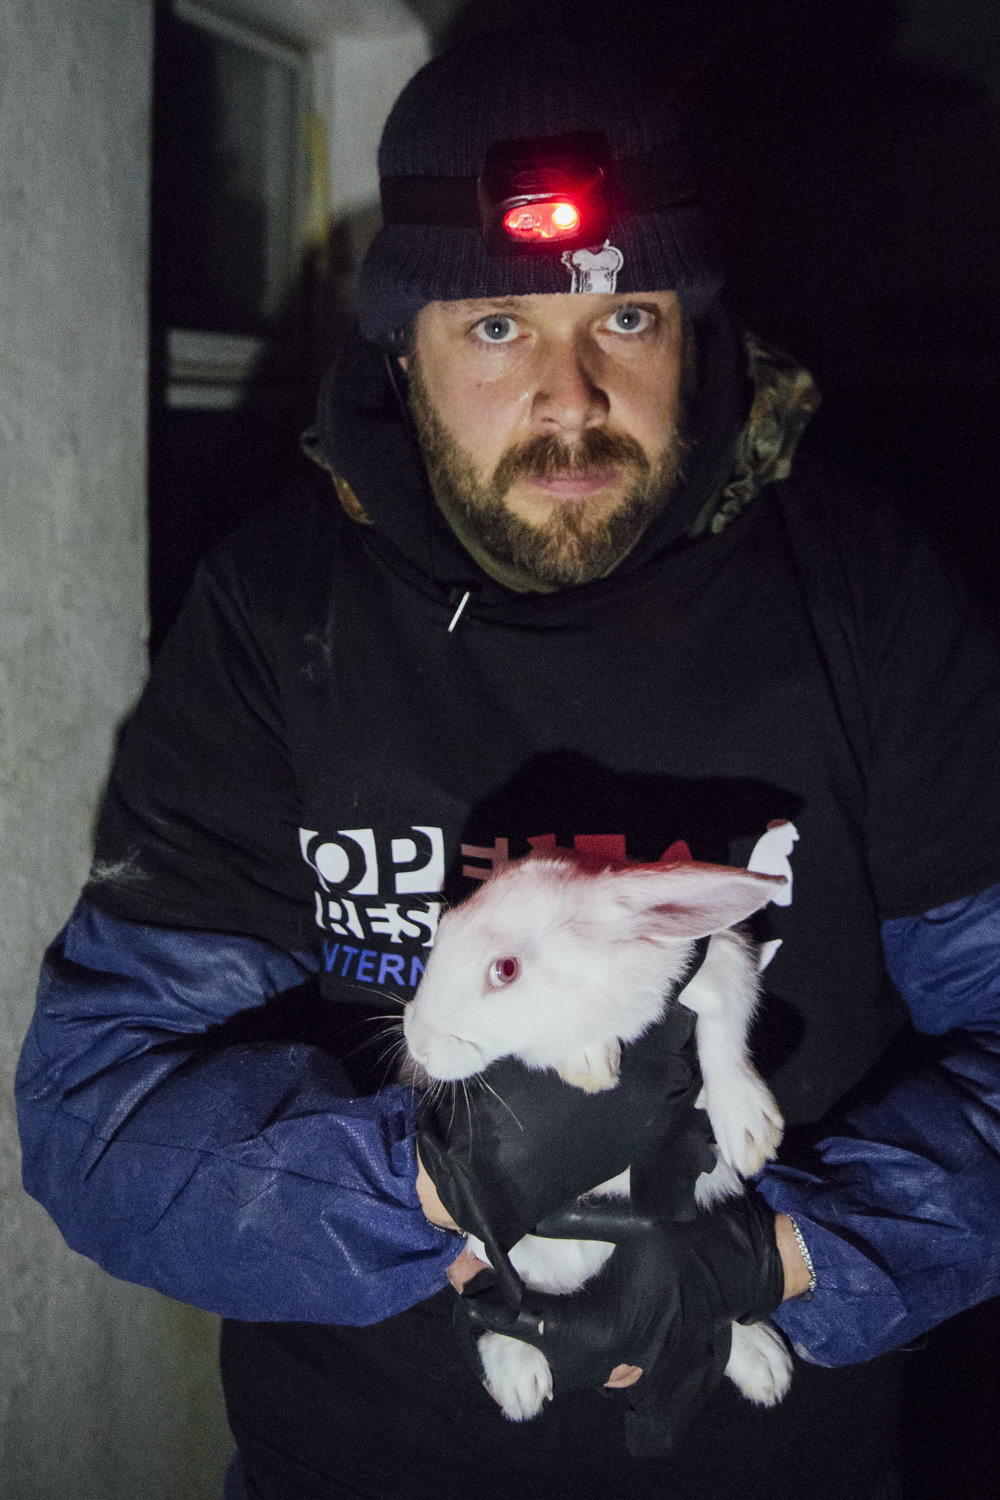 An activist from Tierretter.de in Germany holds a rescued rabbit